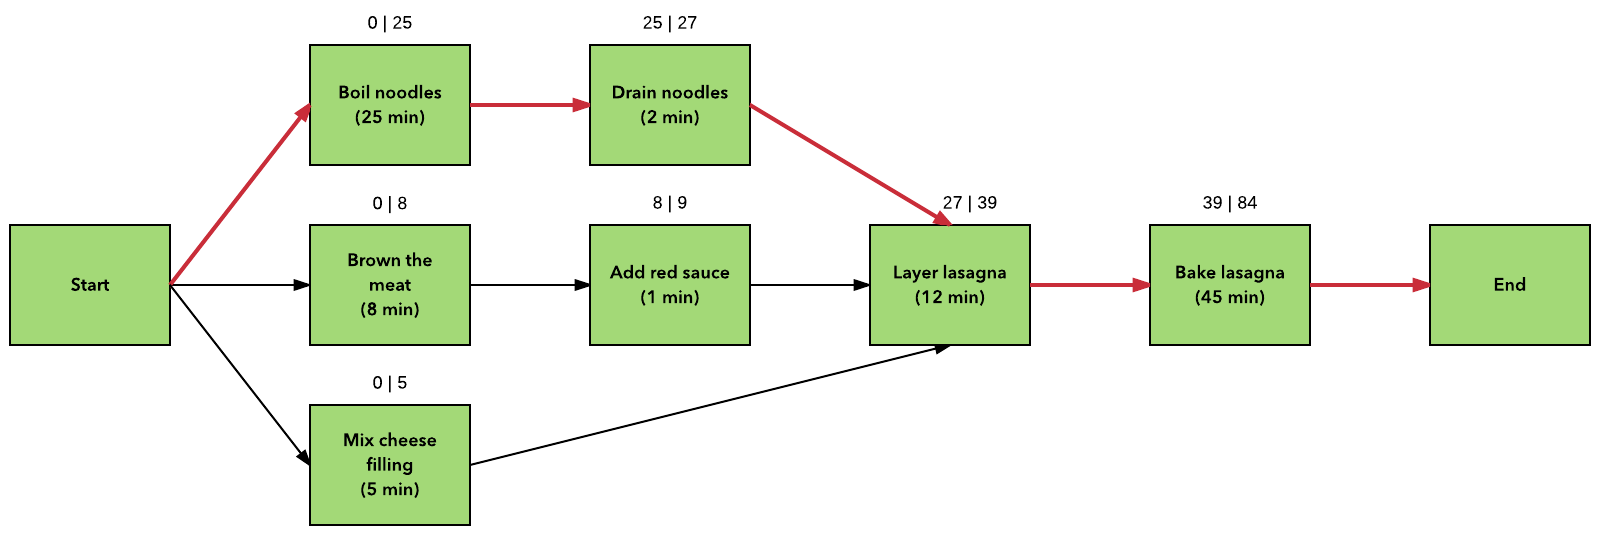 example of critical path analysis in project management